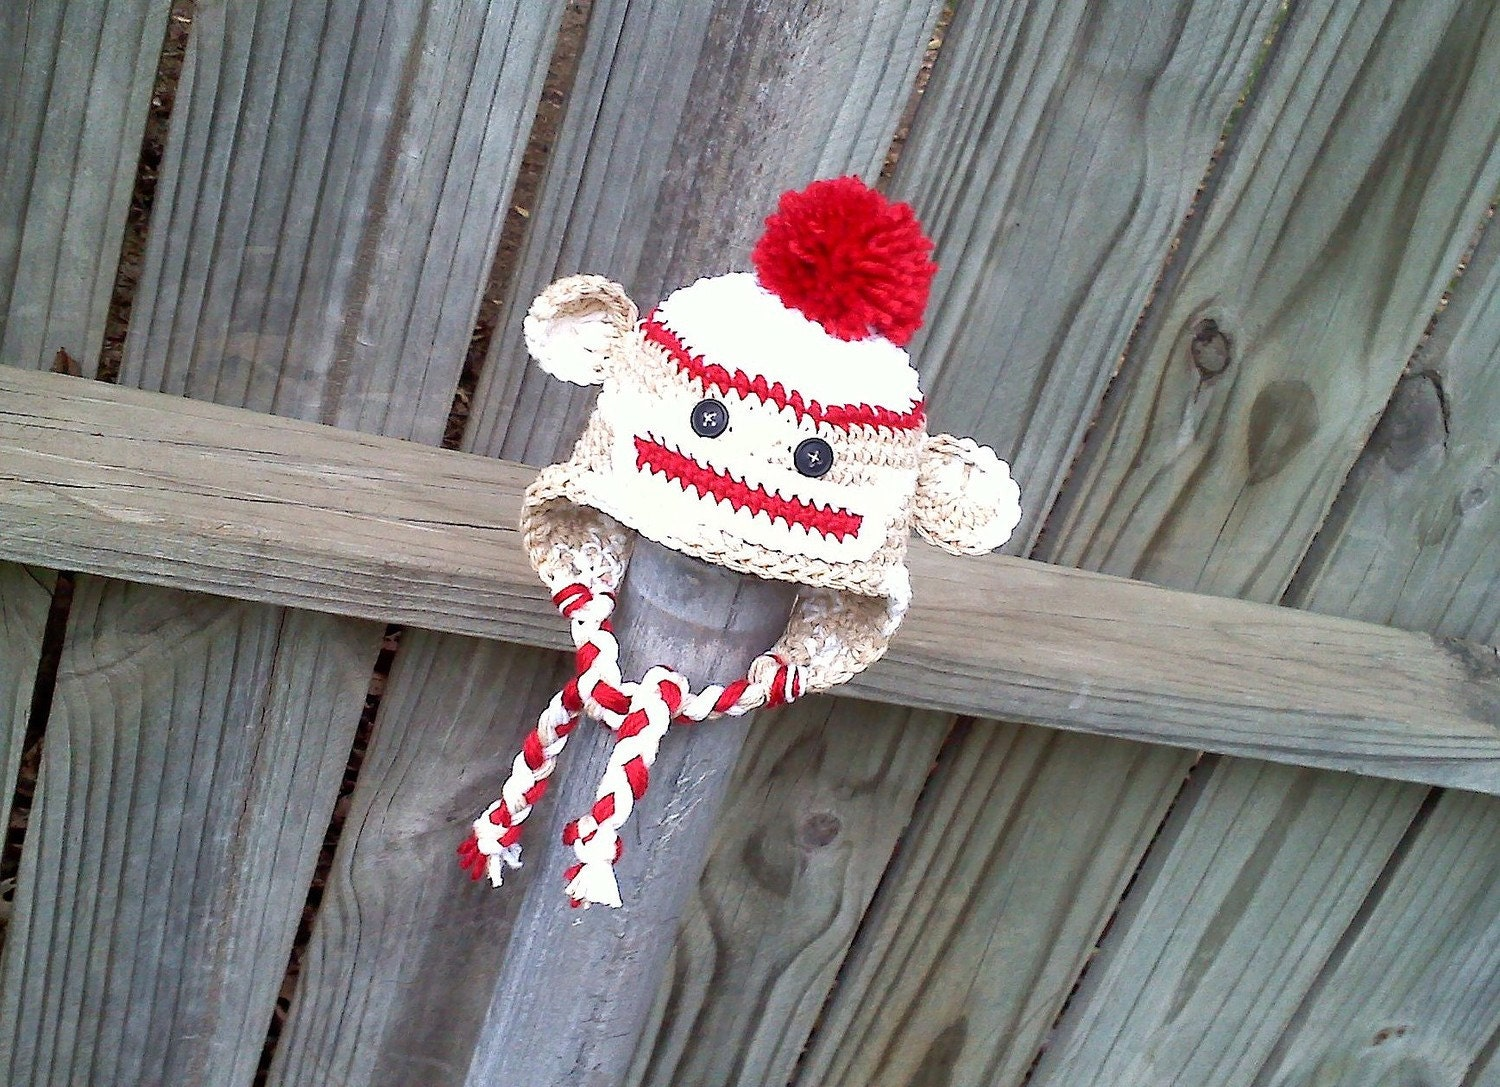 Monkey Hat Sock Earflap Beanie Cap Boy Braided Pom Pom Newborn Baby Toddler Child Crochet Handmade by Amy K